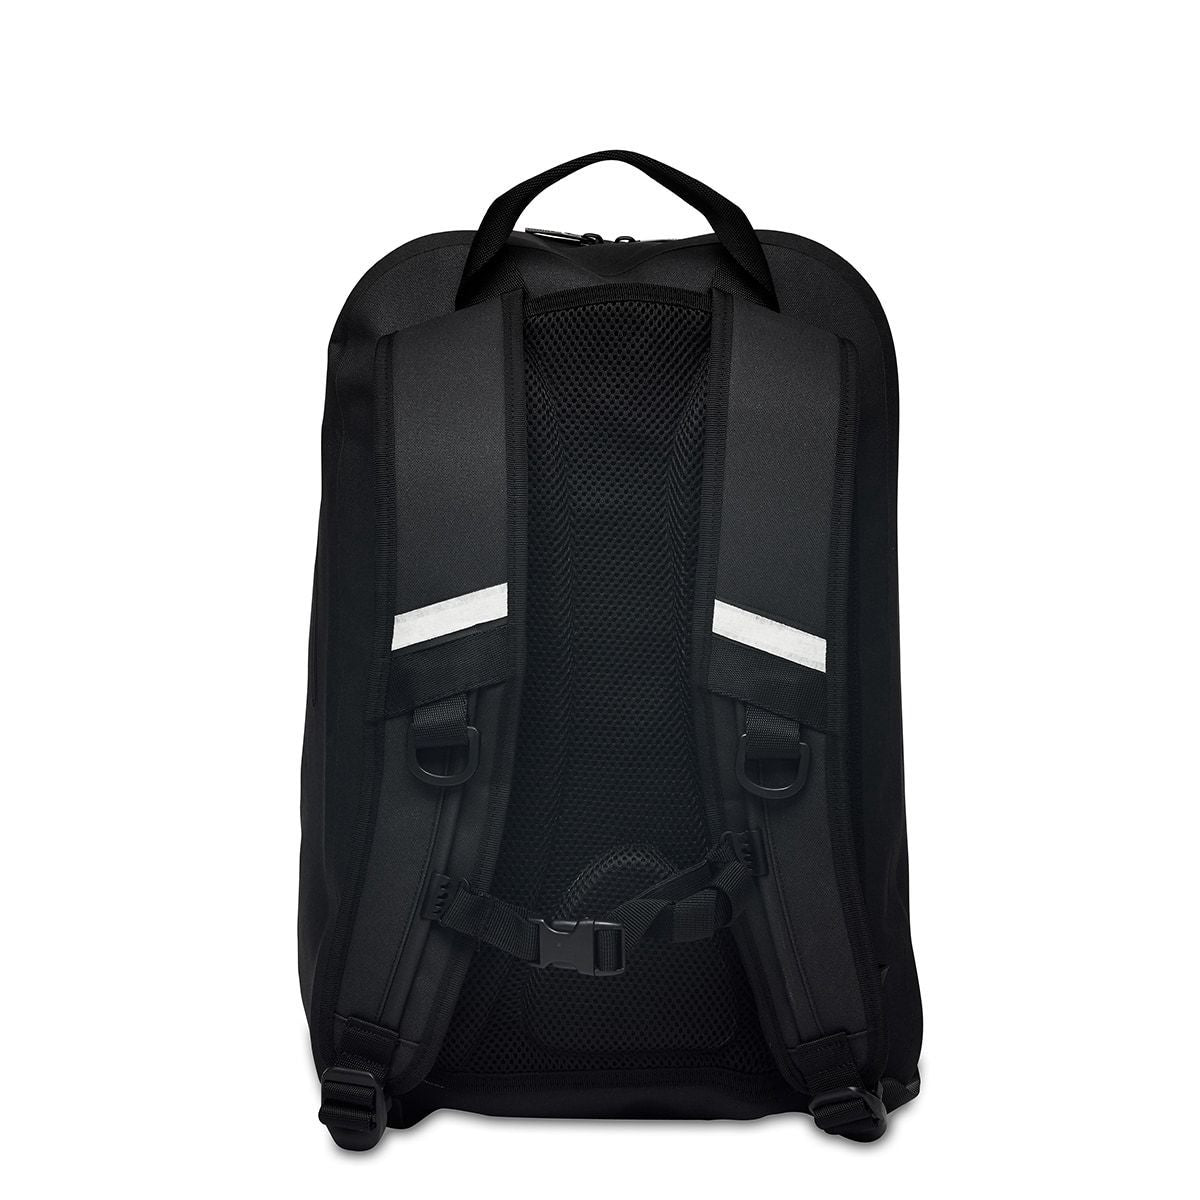 "Harpsden Water-Resistant Laptop Backpack - 14"" -  Black 